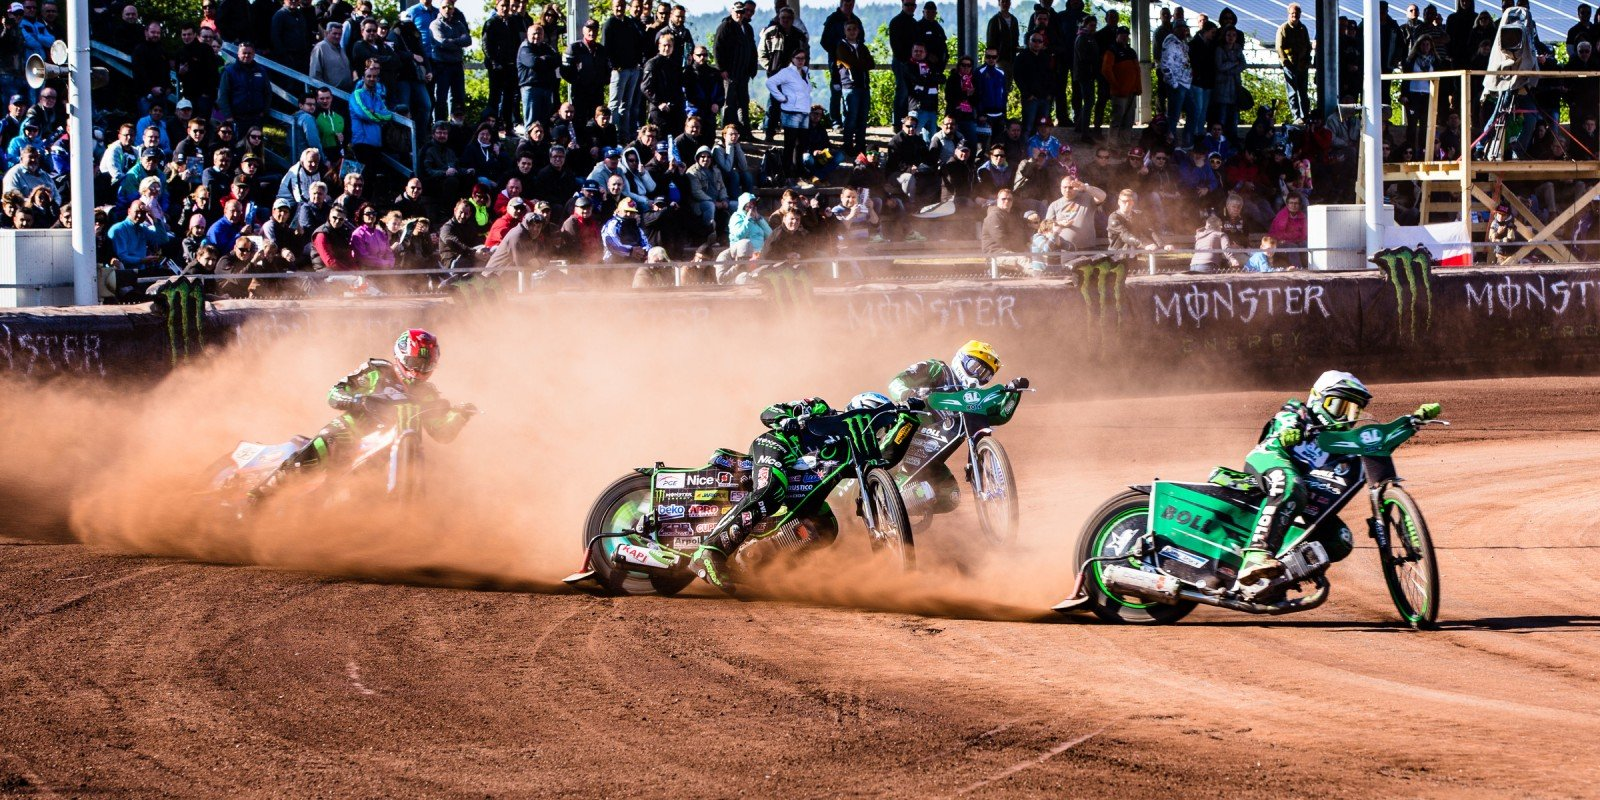 Images from round 2 of the speedway best pairs series in Landshut, Germany